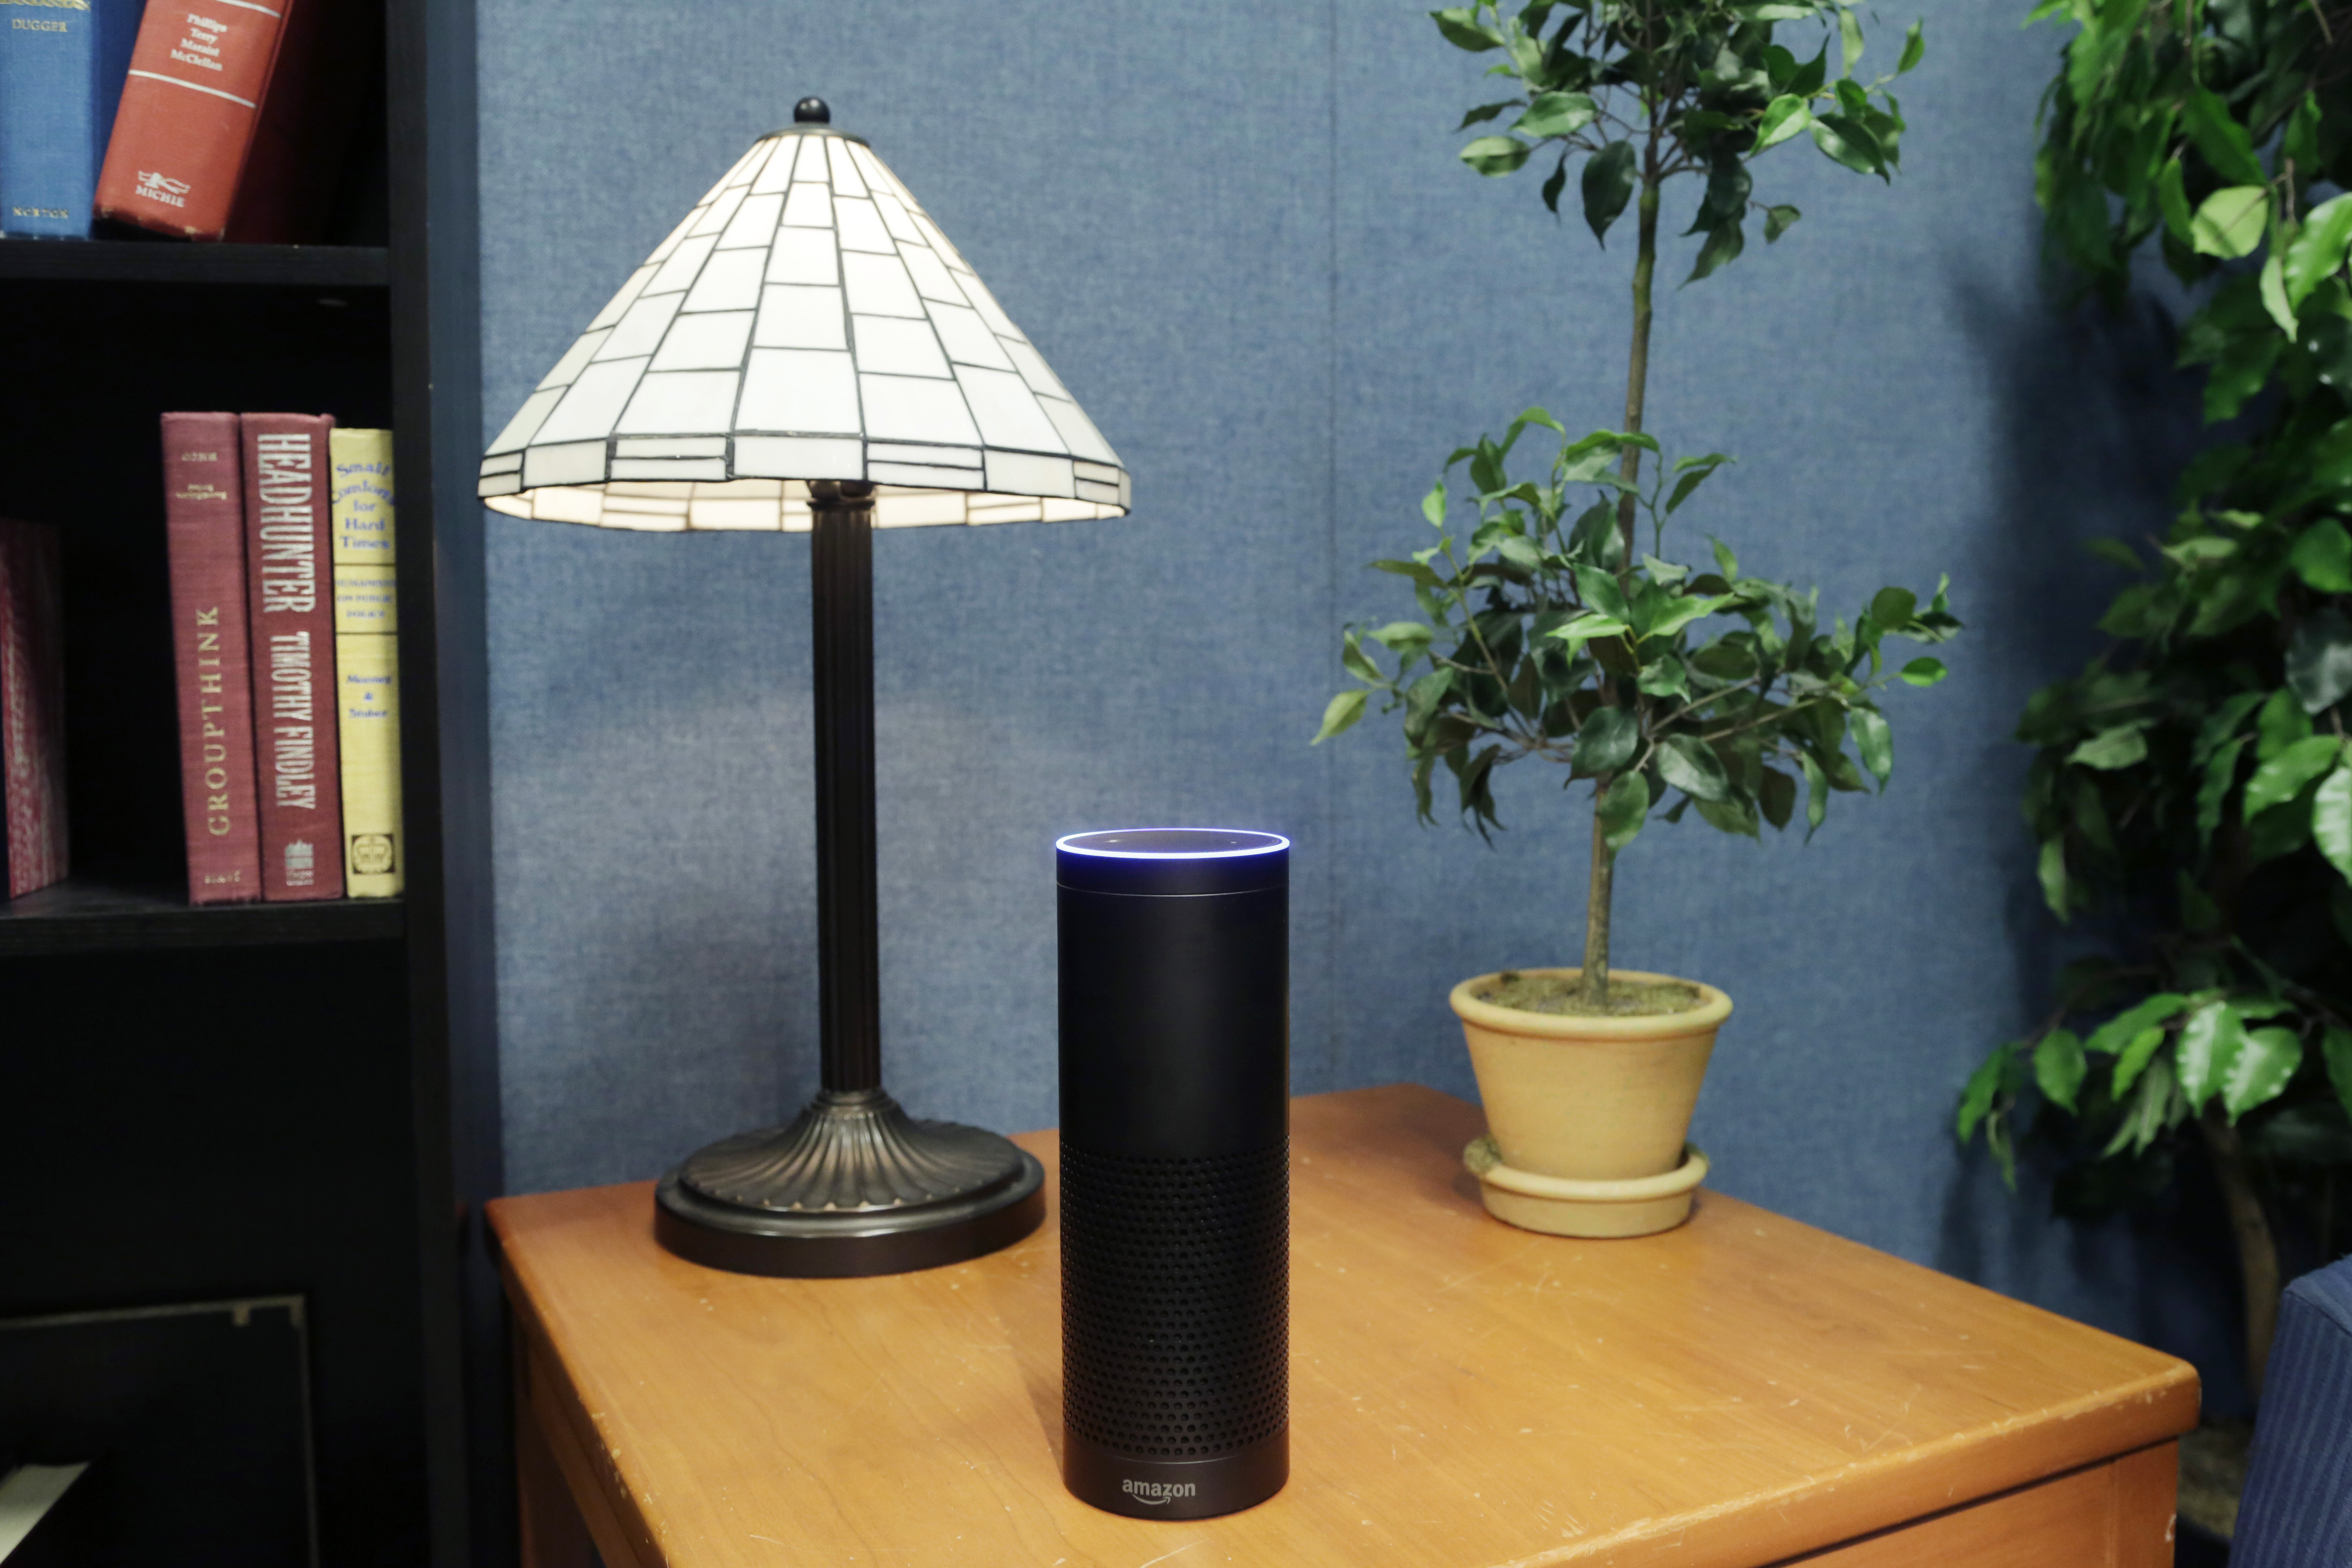 Amazon's Echo, an Internet-connected digital assistant that can be set up in a home or office to listen for various requests, such as songs, sports scores or the weather, is shown in New York, July 29, 2015.  (AP)